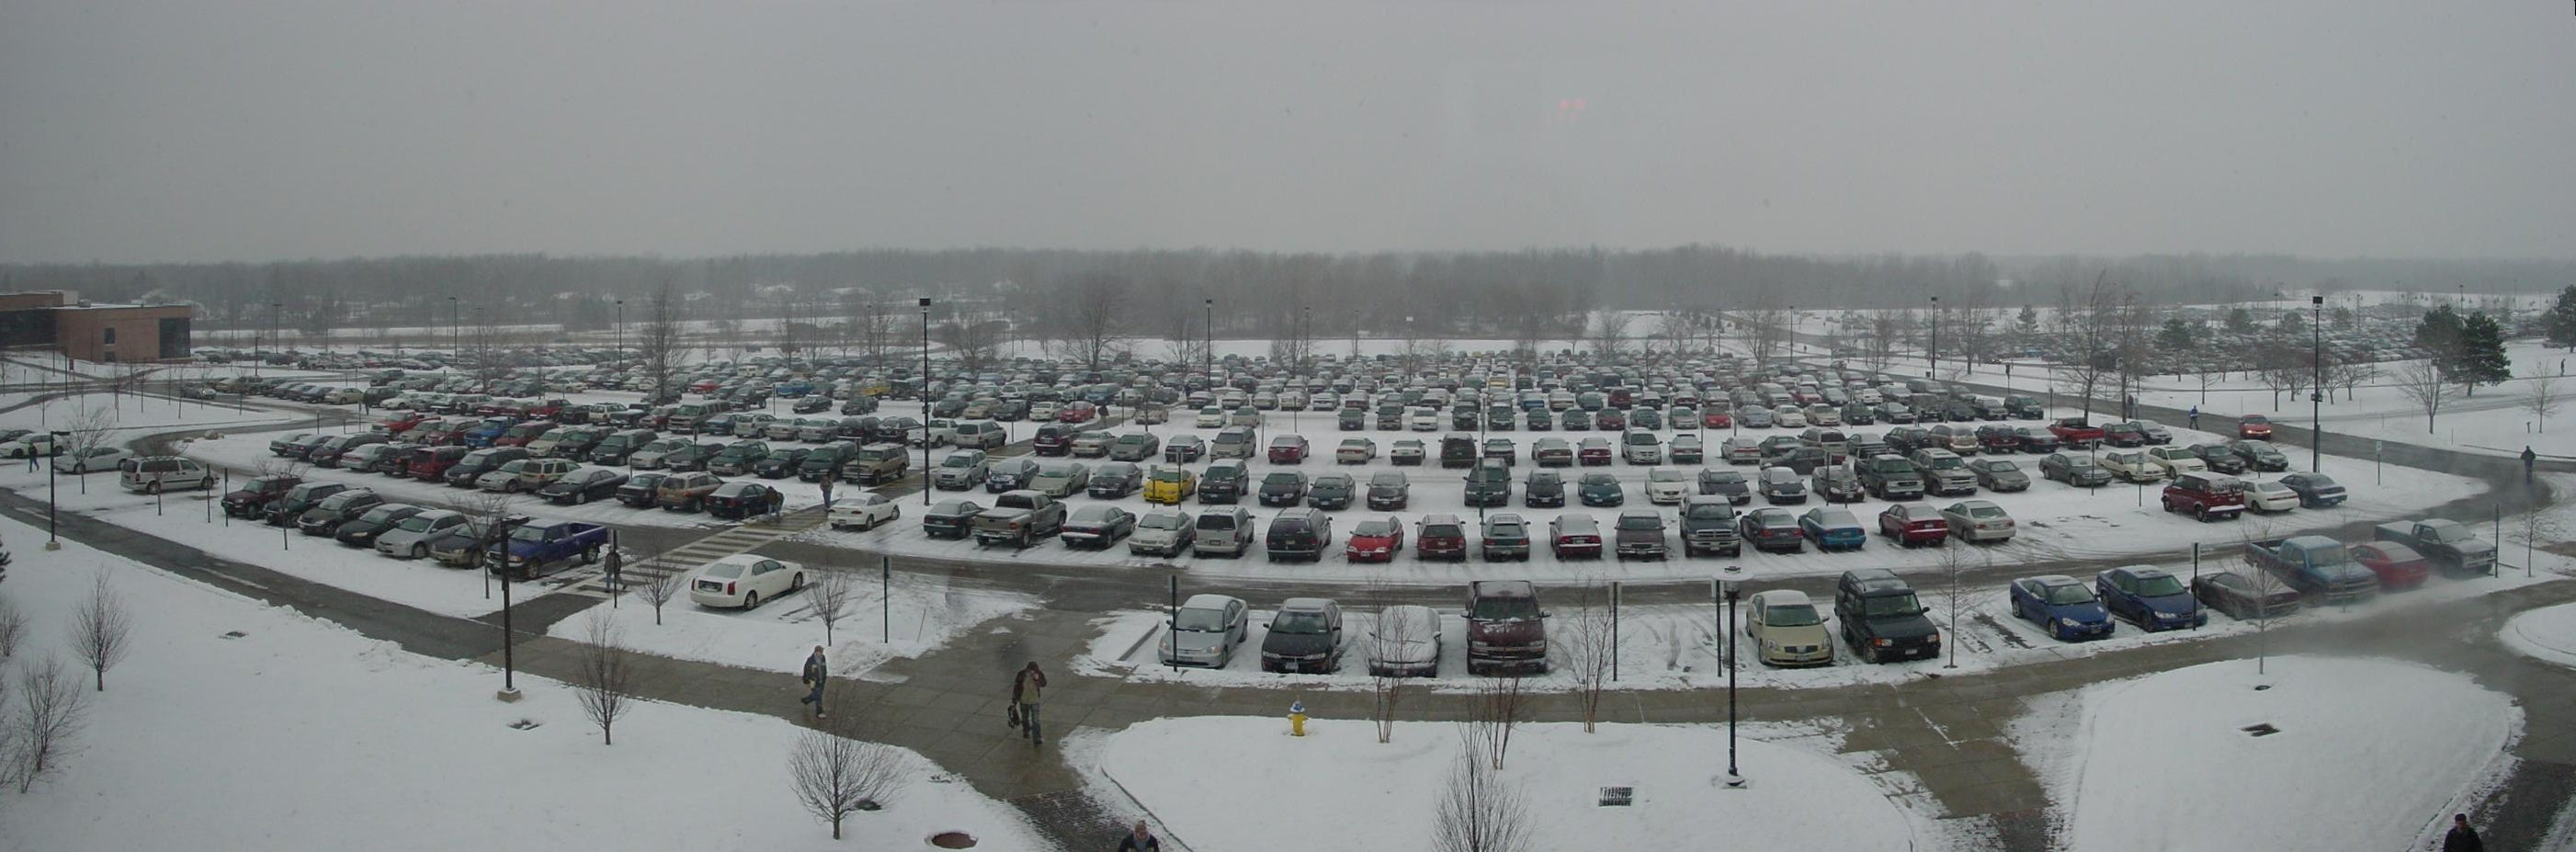 A parking lot in Rochester, New York.